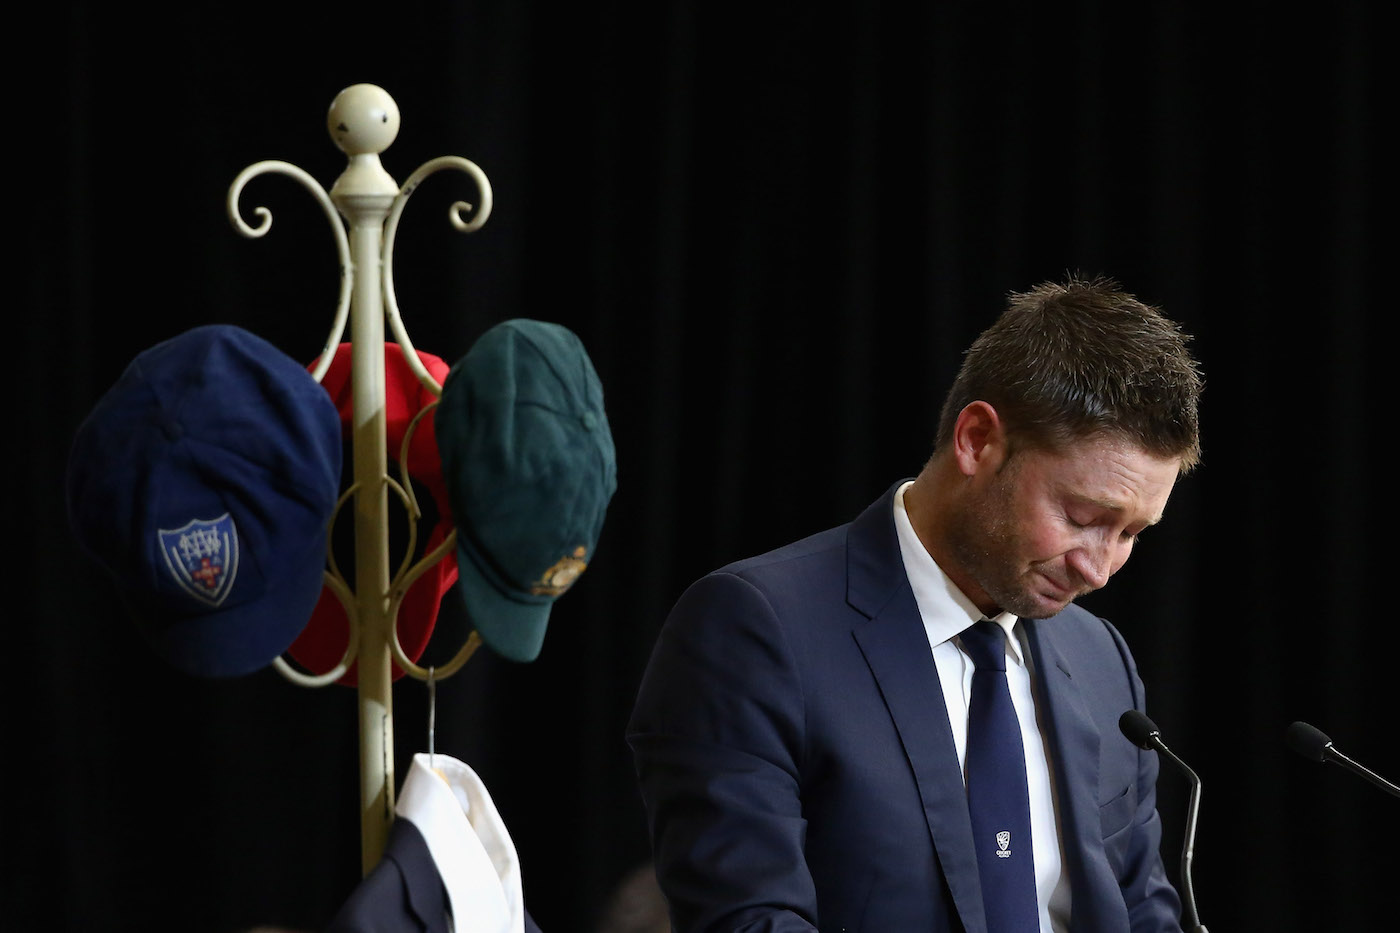 Clarke said in hindsight that he ought to have ended his career after the wrenching trauma of the death of Phillip Hughes